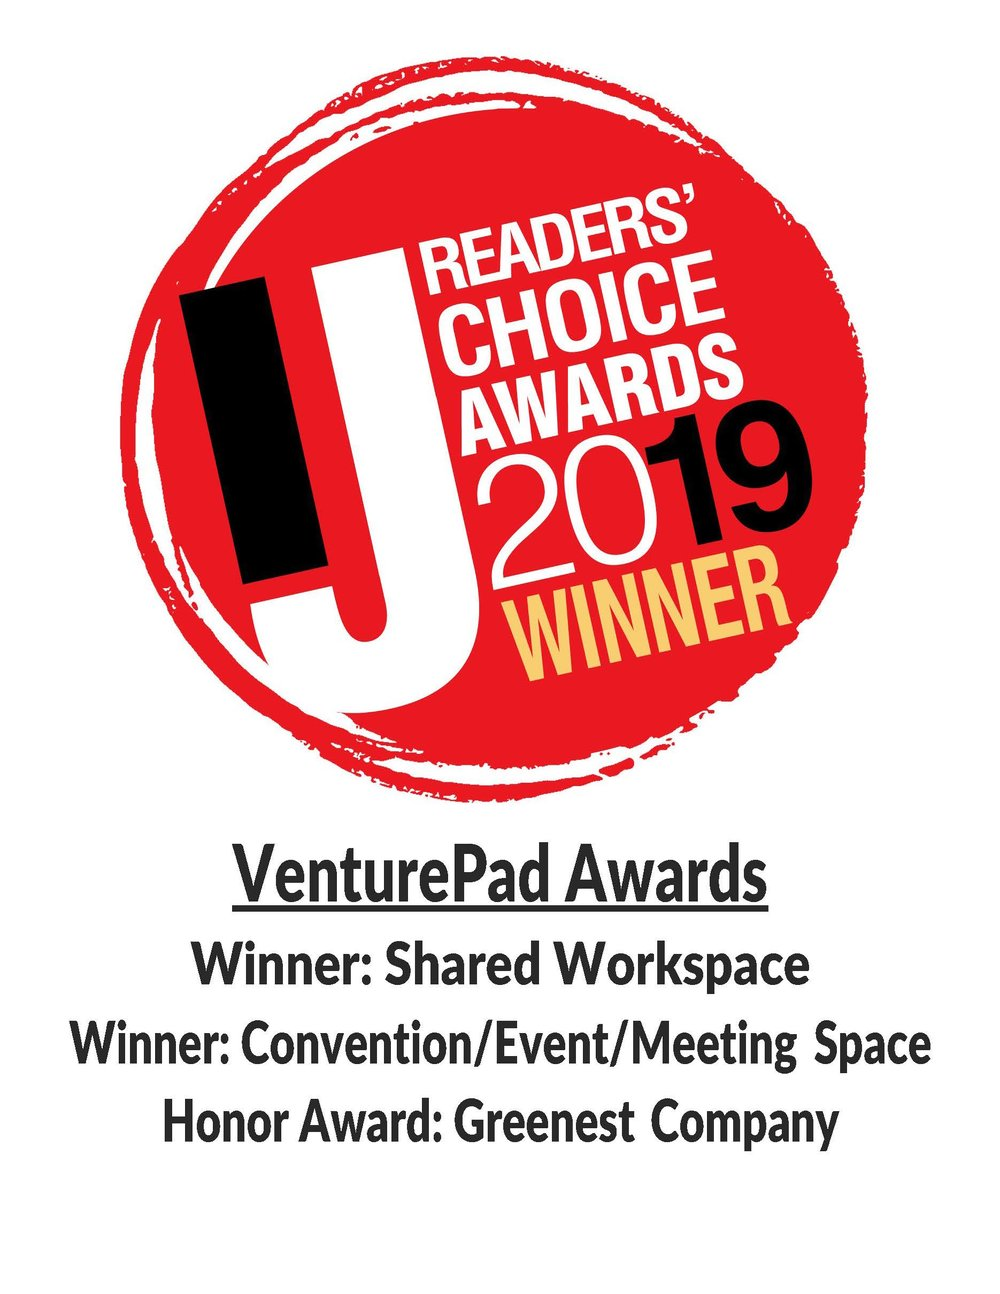 VenturePad is on:Page 40: Winner: Convention/Event/Meeting SpacePage 42: Honor Award: Greenest CompanyPage 52: Winner: Shared Workspace -